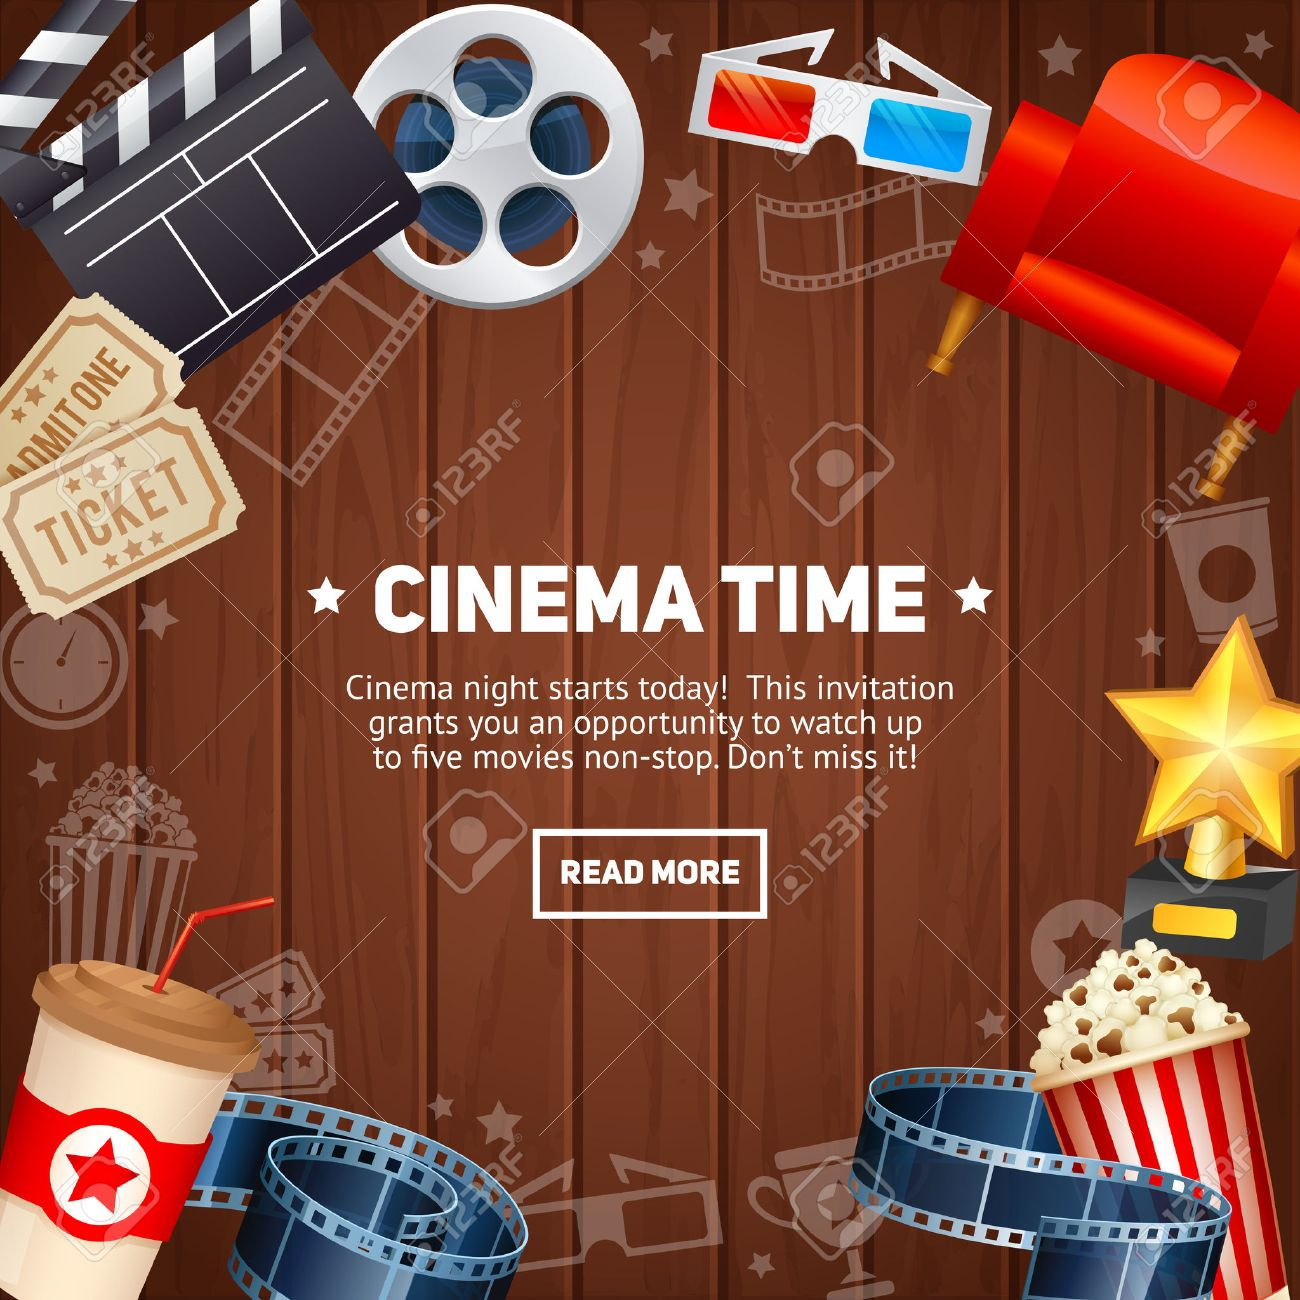 Nice 1099 Template Excel Small 1099 Template Word Flat 2014 Monthly Calendar Templates 2015 Template Calendar Old 3d Animator Resume Templates Green3d Character Modeler Resume Realistic Cinema Movie Poster Template With Film Reel, Clapper ..